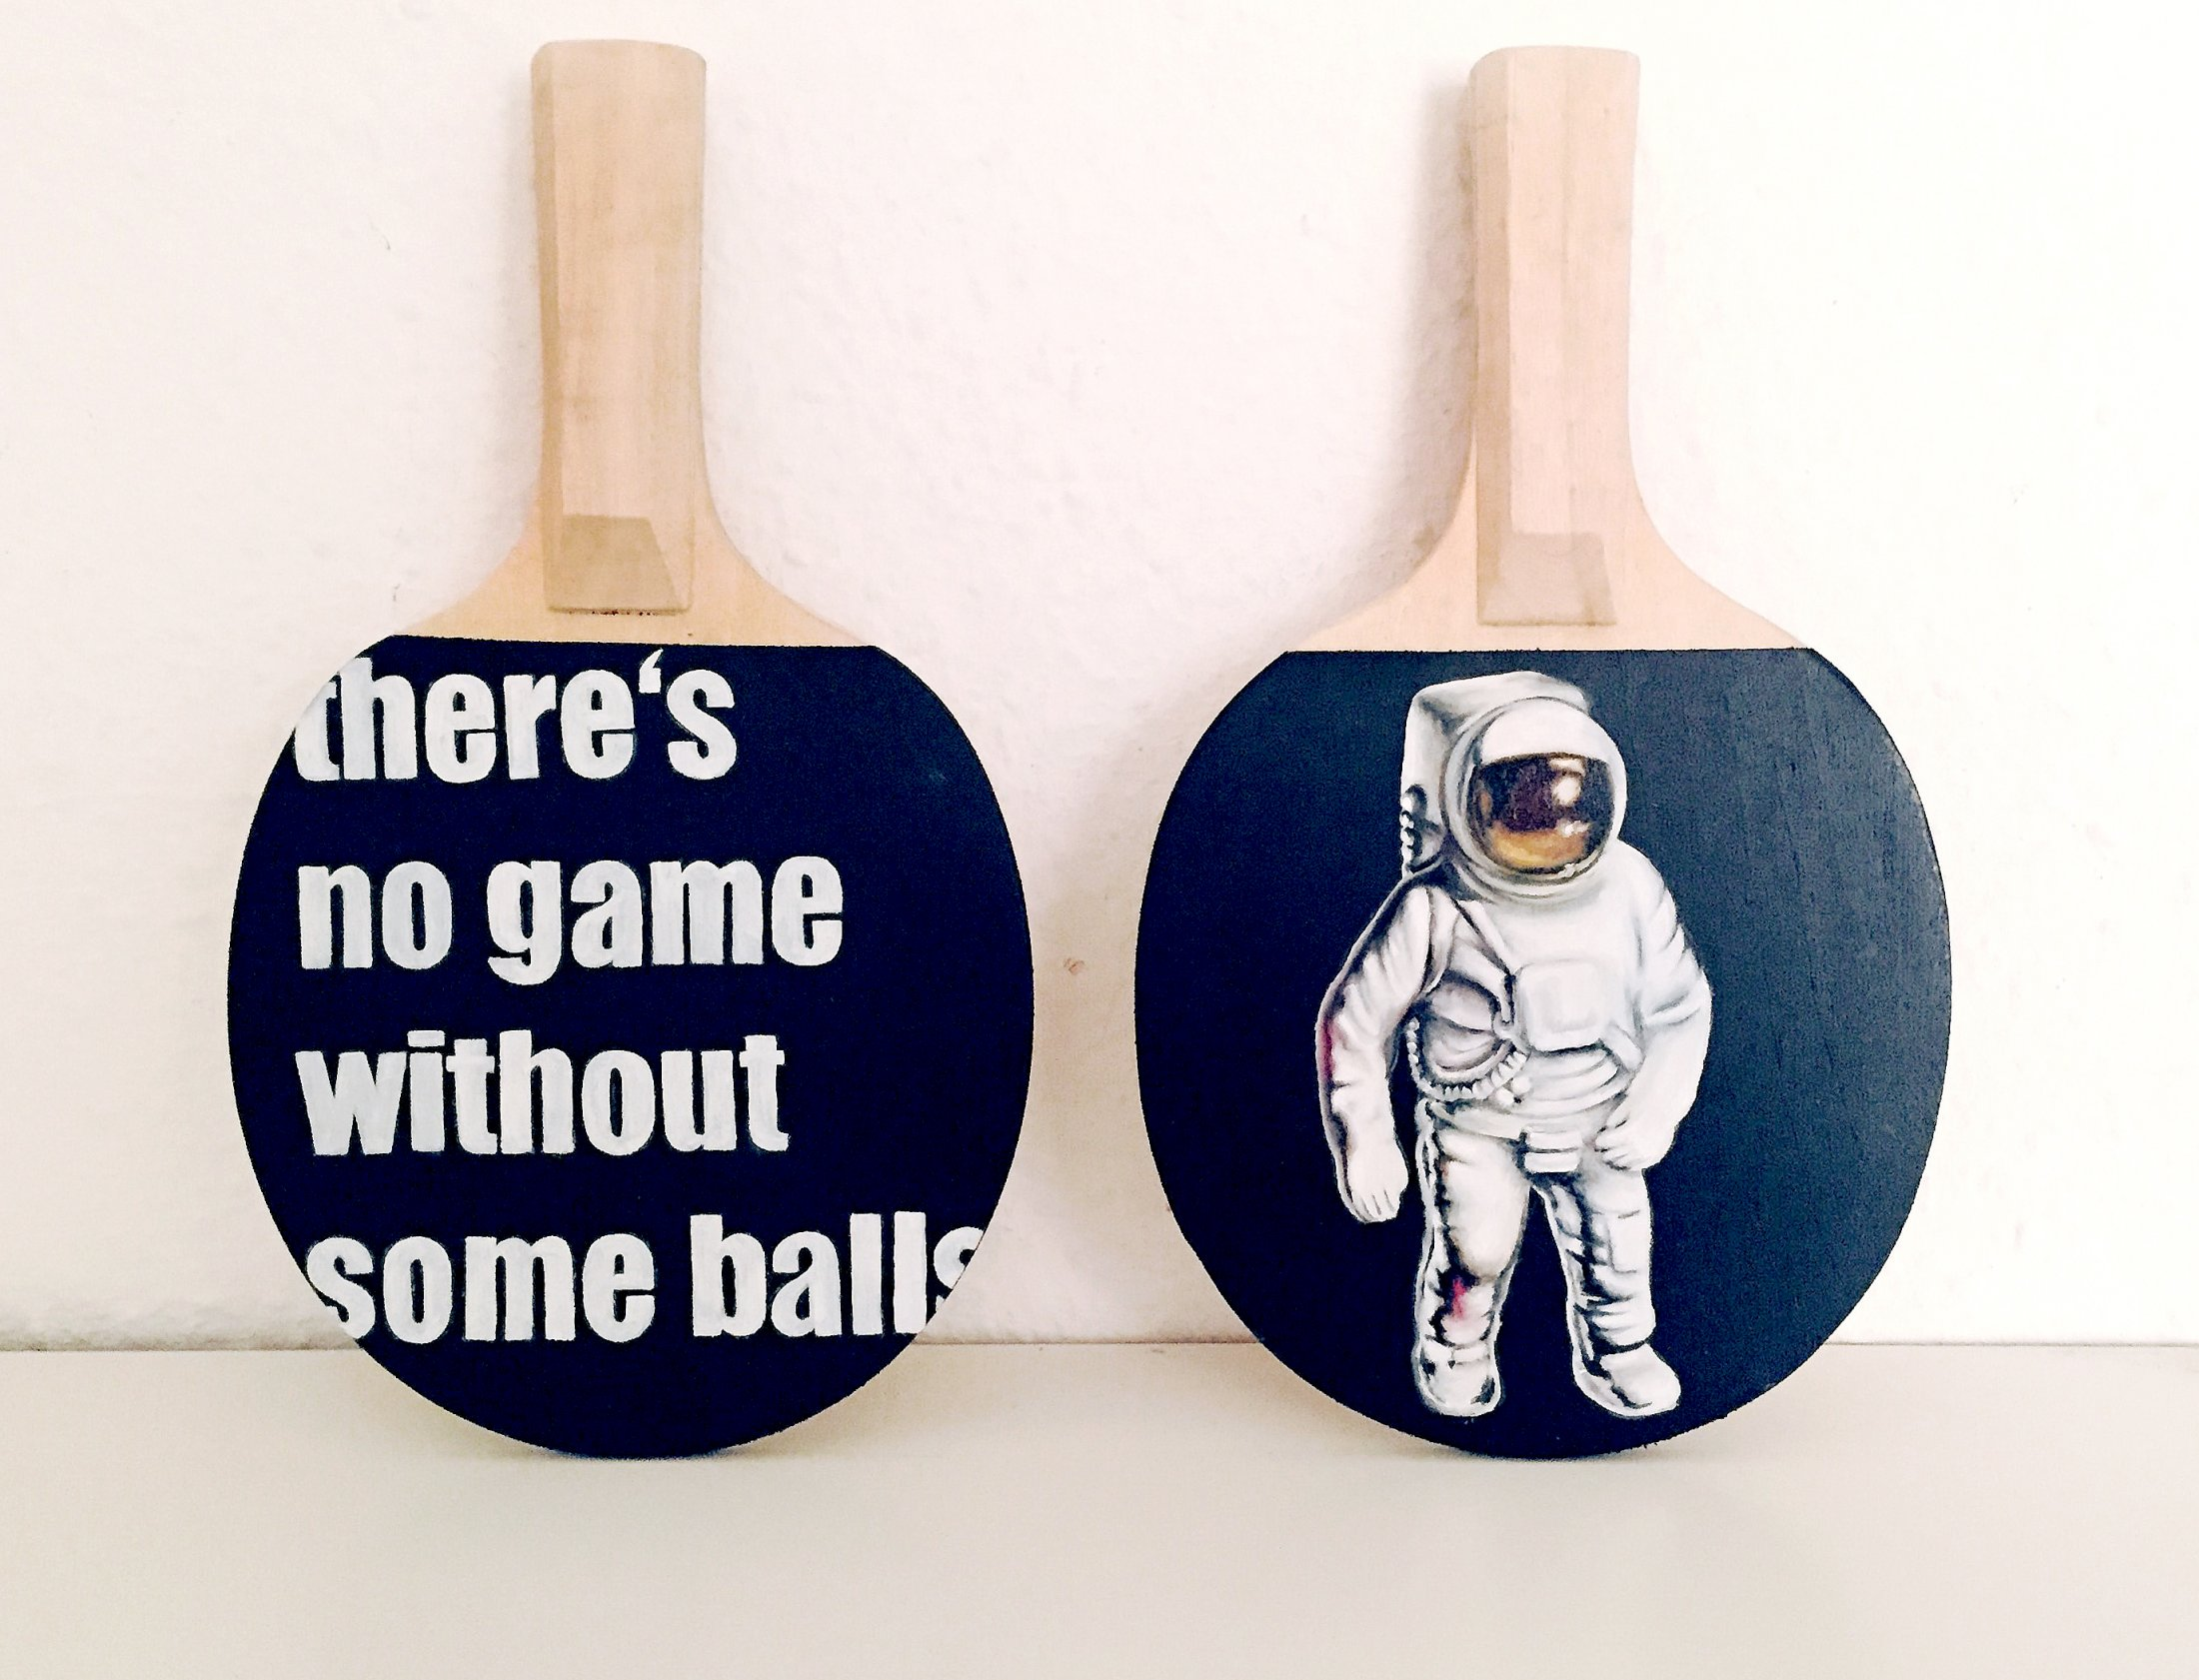 There's no game without some balls